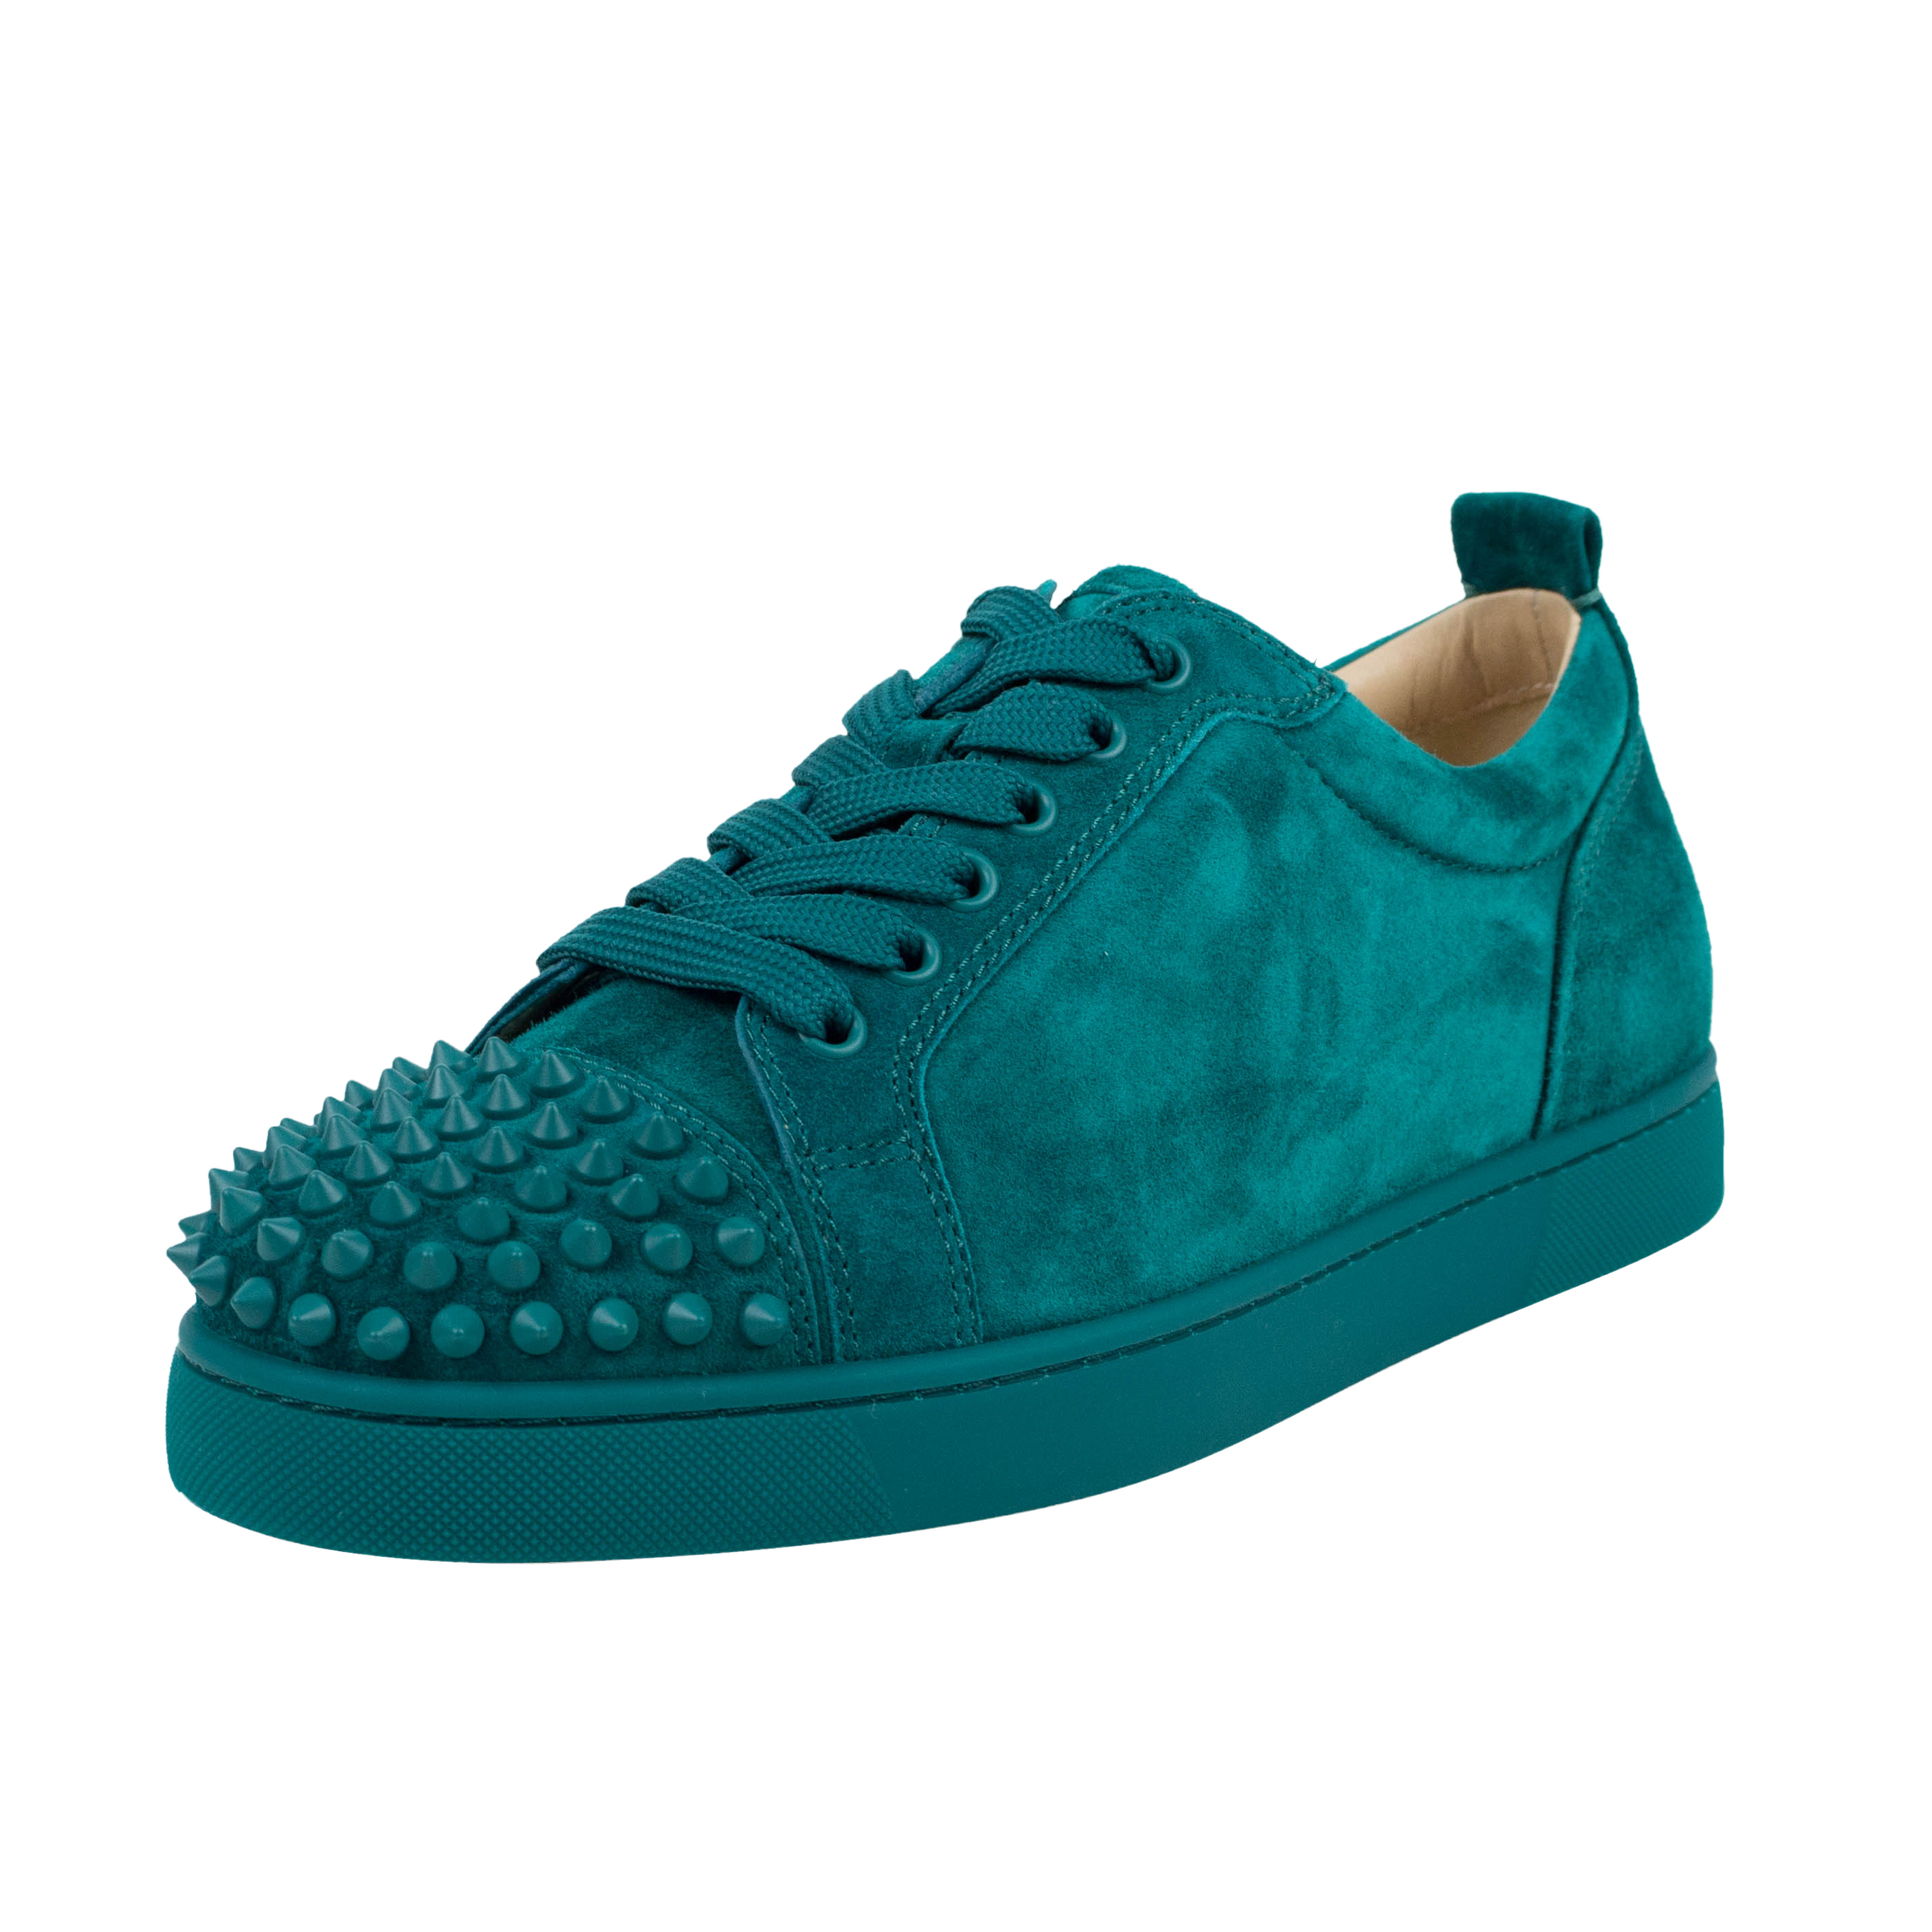 separation shoes 8ad2a 310d0 'Louis Junior' Green Spikes Suede Sneakers Shoes